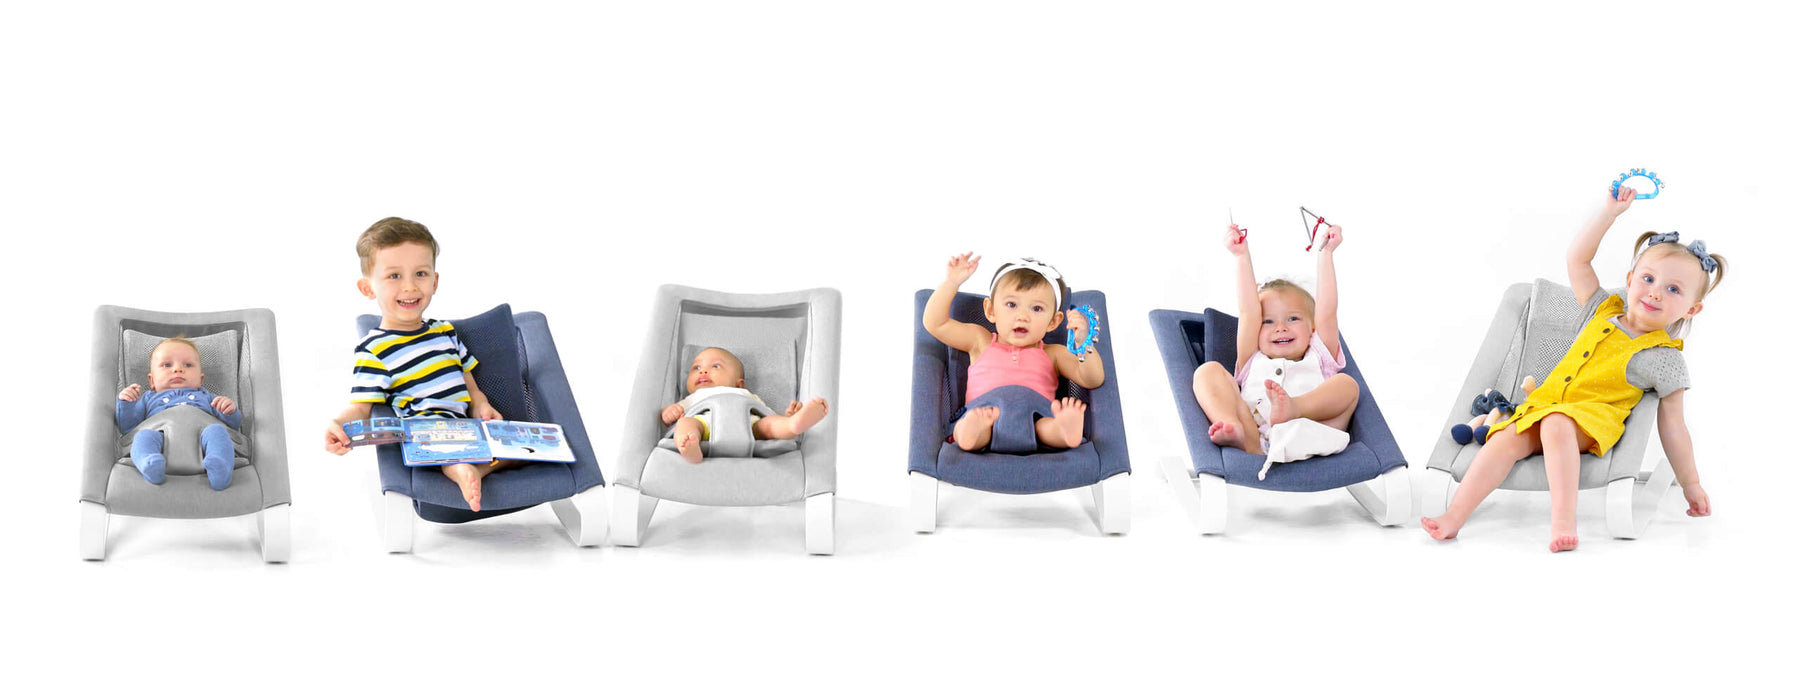 Baby bouncer from newborn to 5 years old kids and toddlers